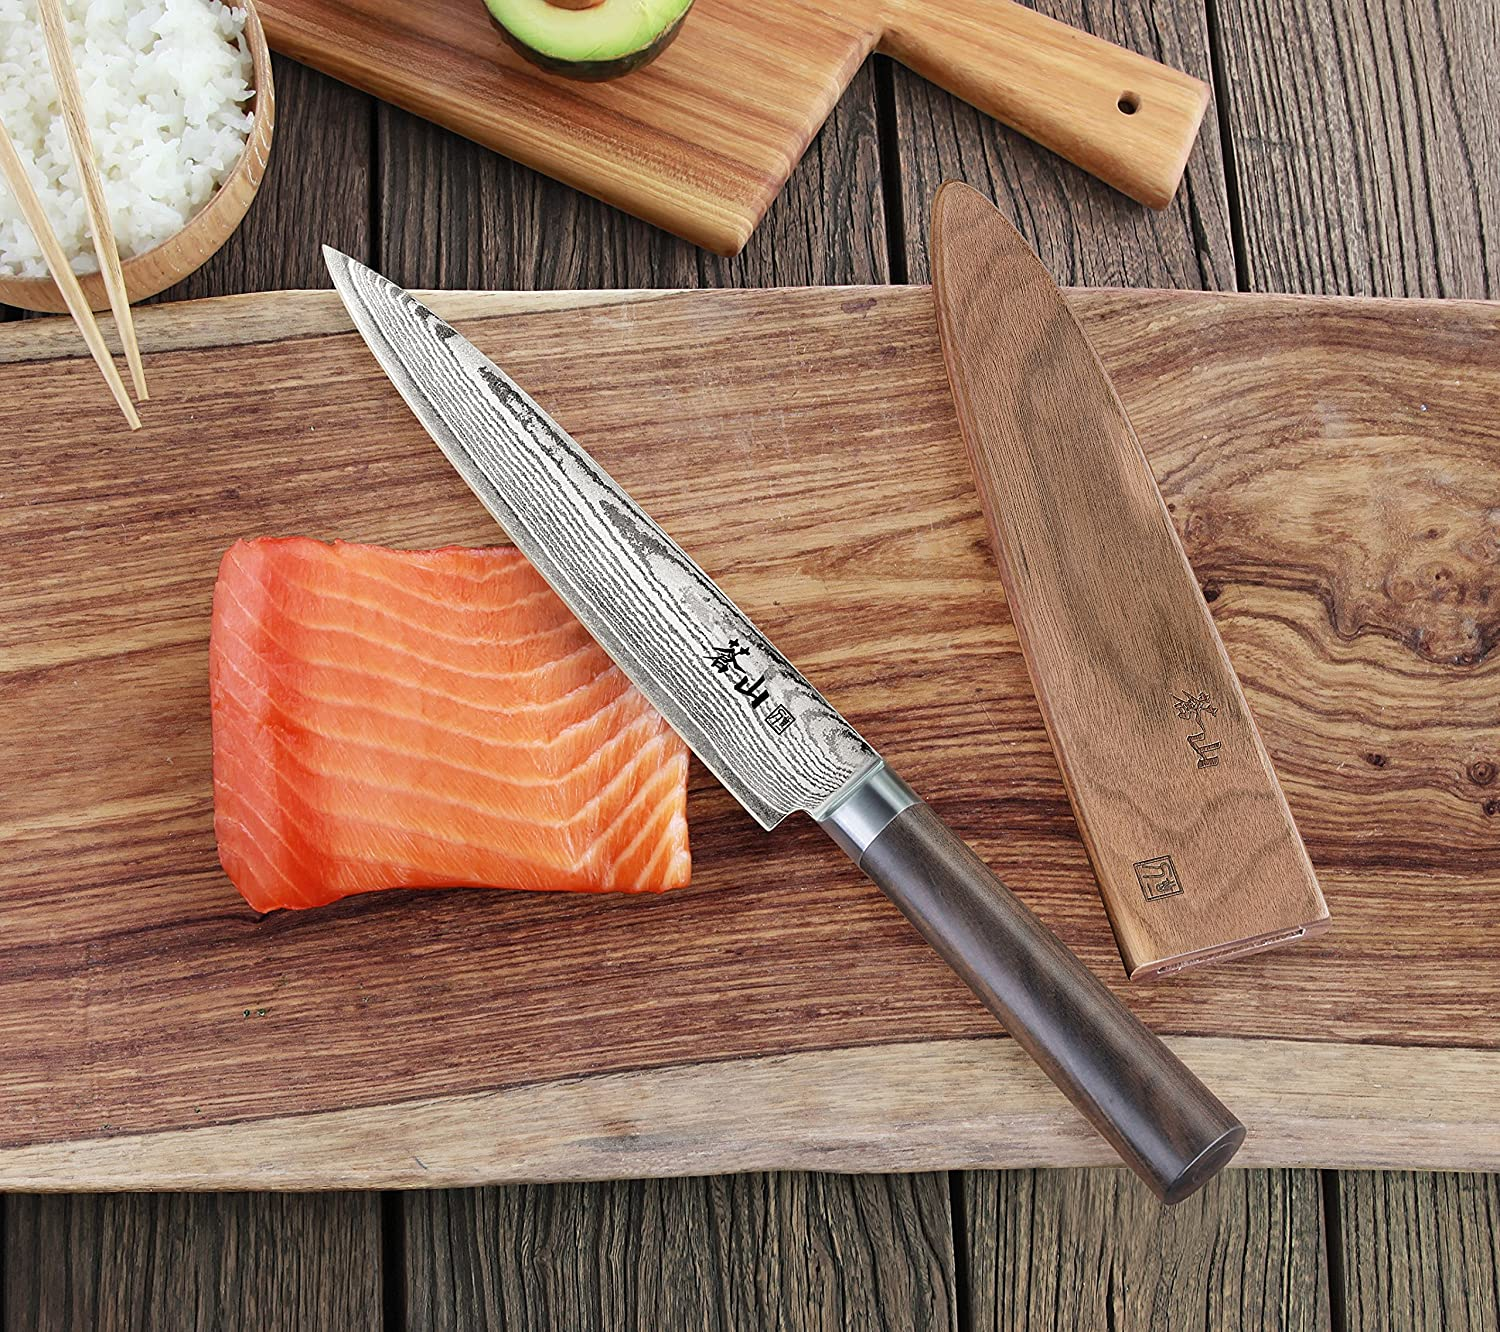 Types of Sushi Knives